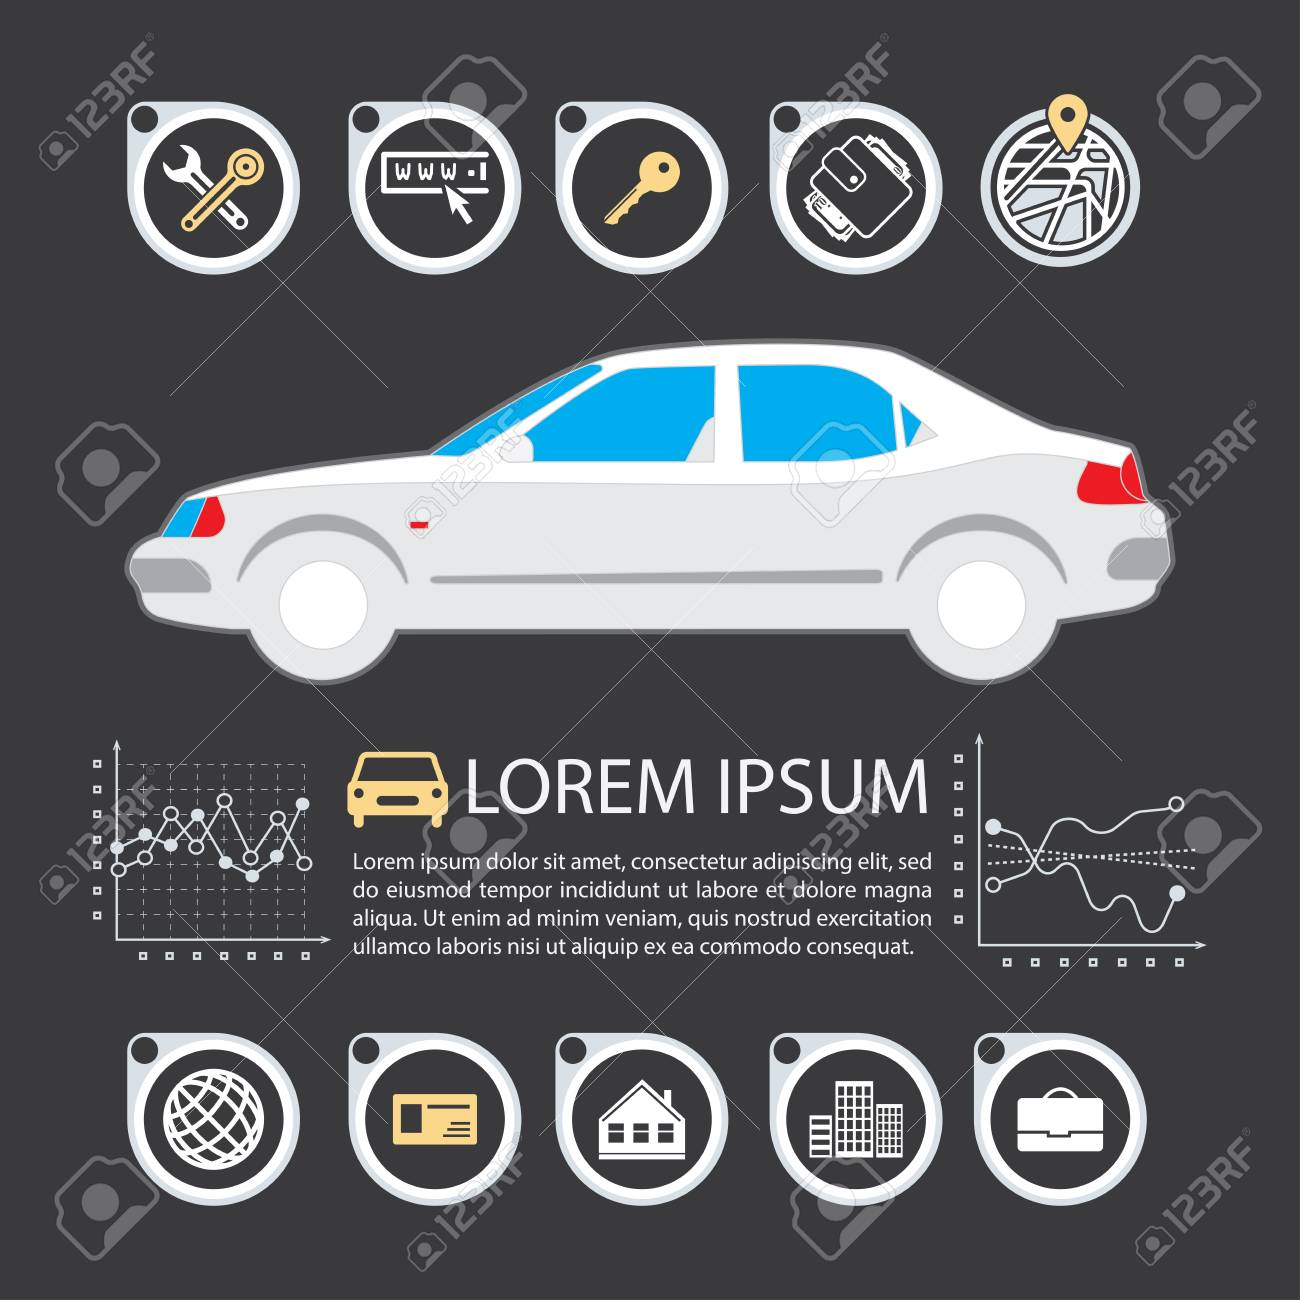 Information Graphics Design Element And Vehicle Illustrations Royalty Free Cliparts Vectors And Stock Illustration Image 59596061